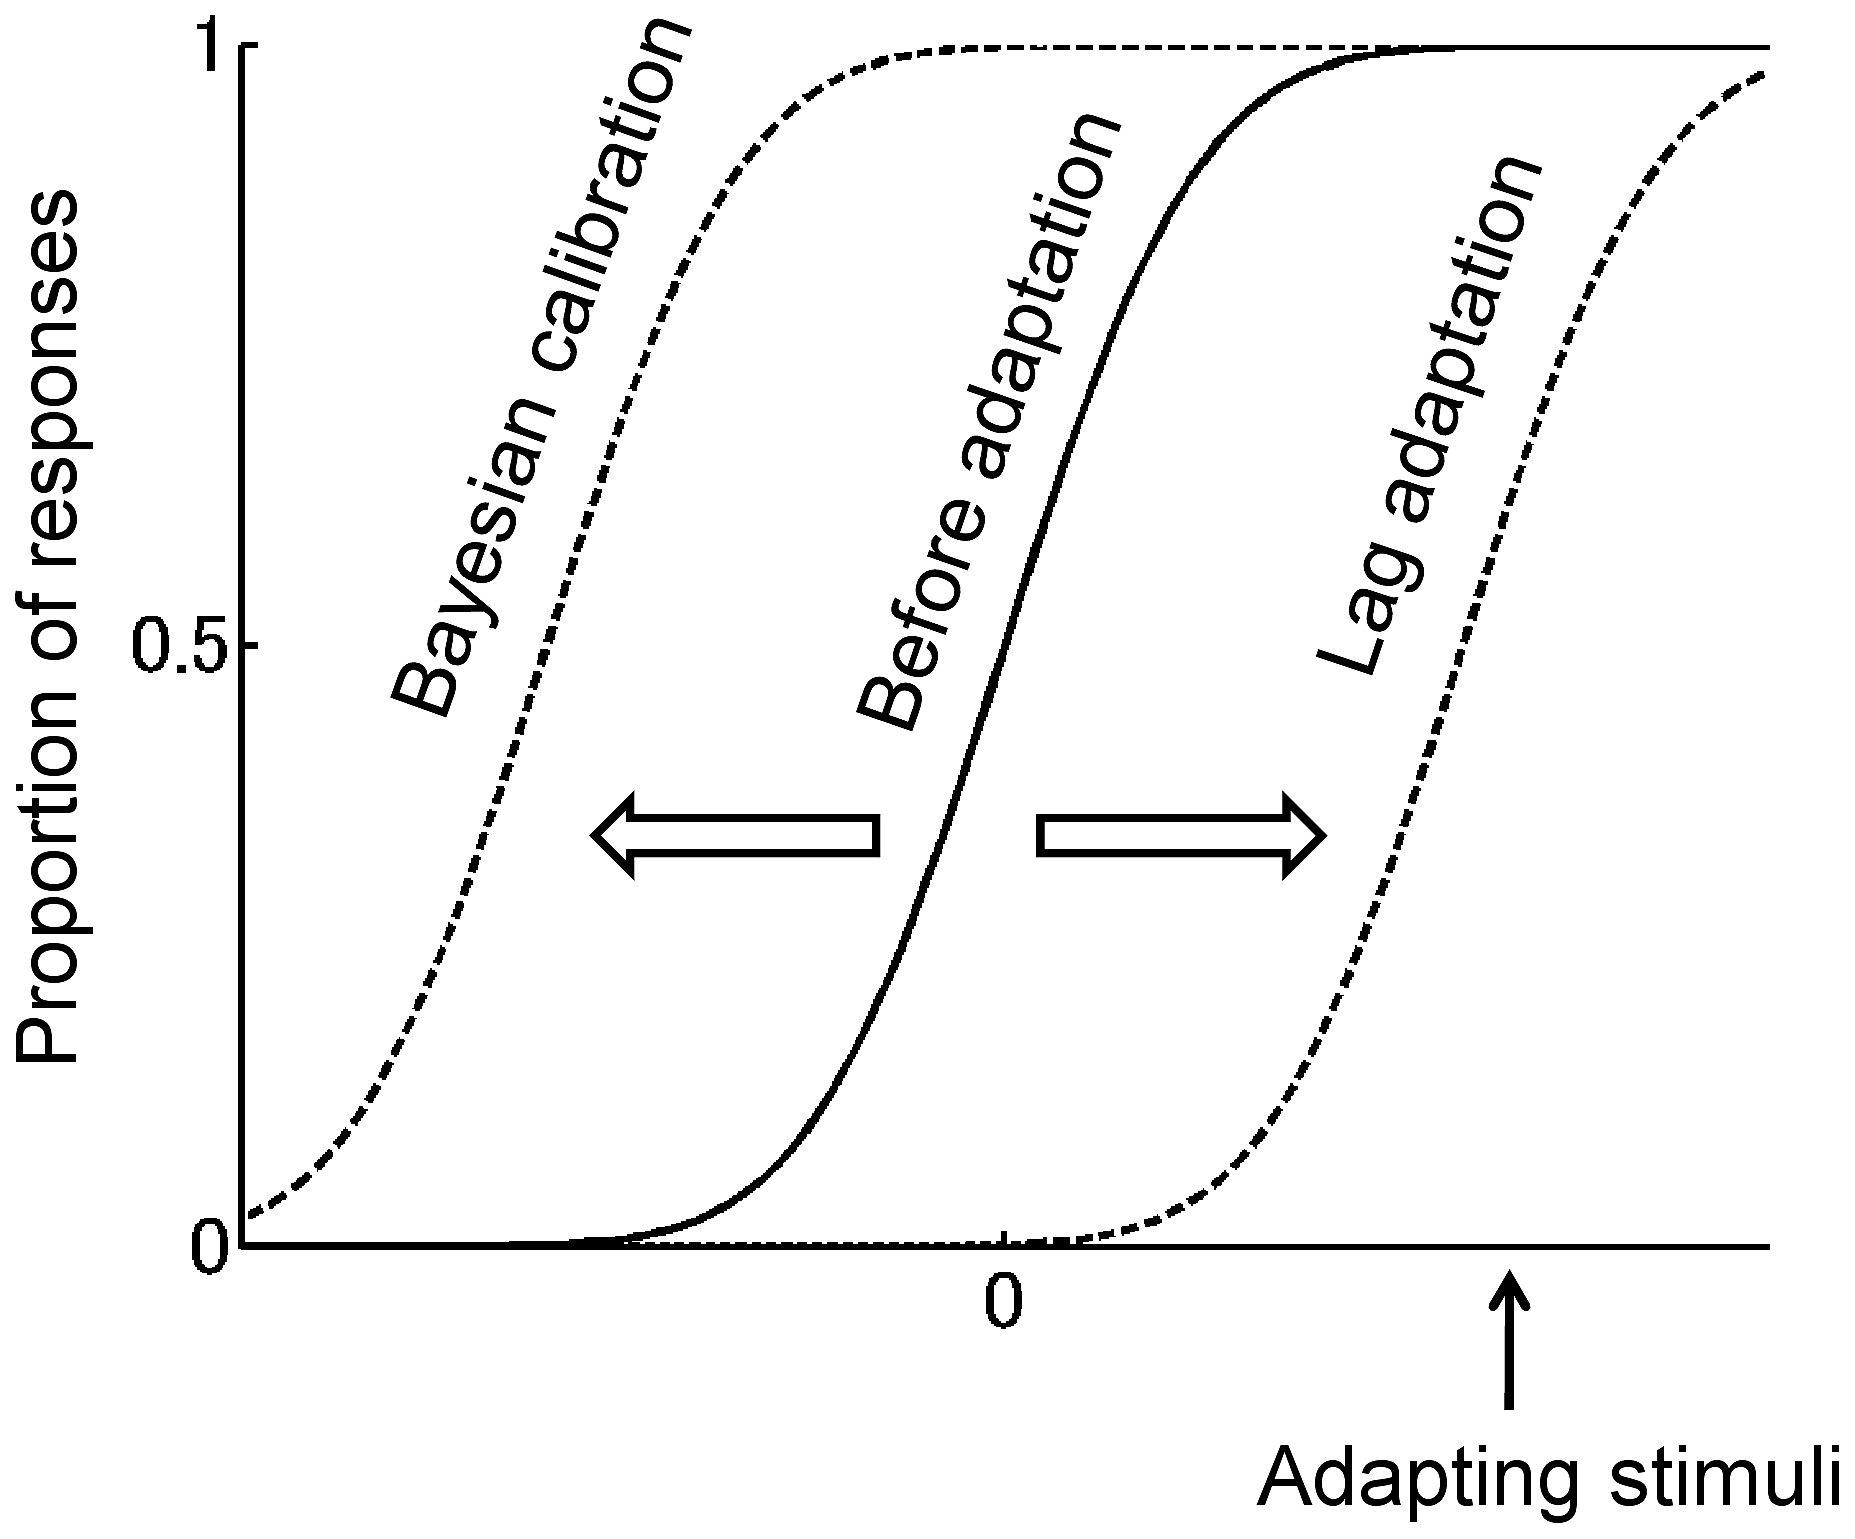 Two Types Of Adaptation Effects On A Psychometric Function